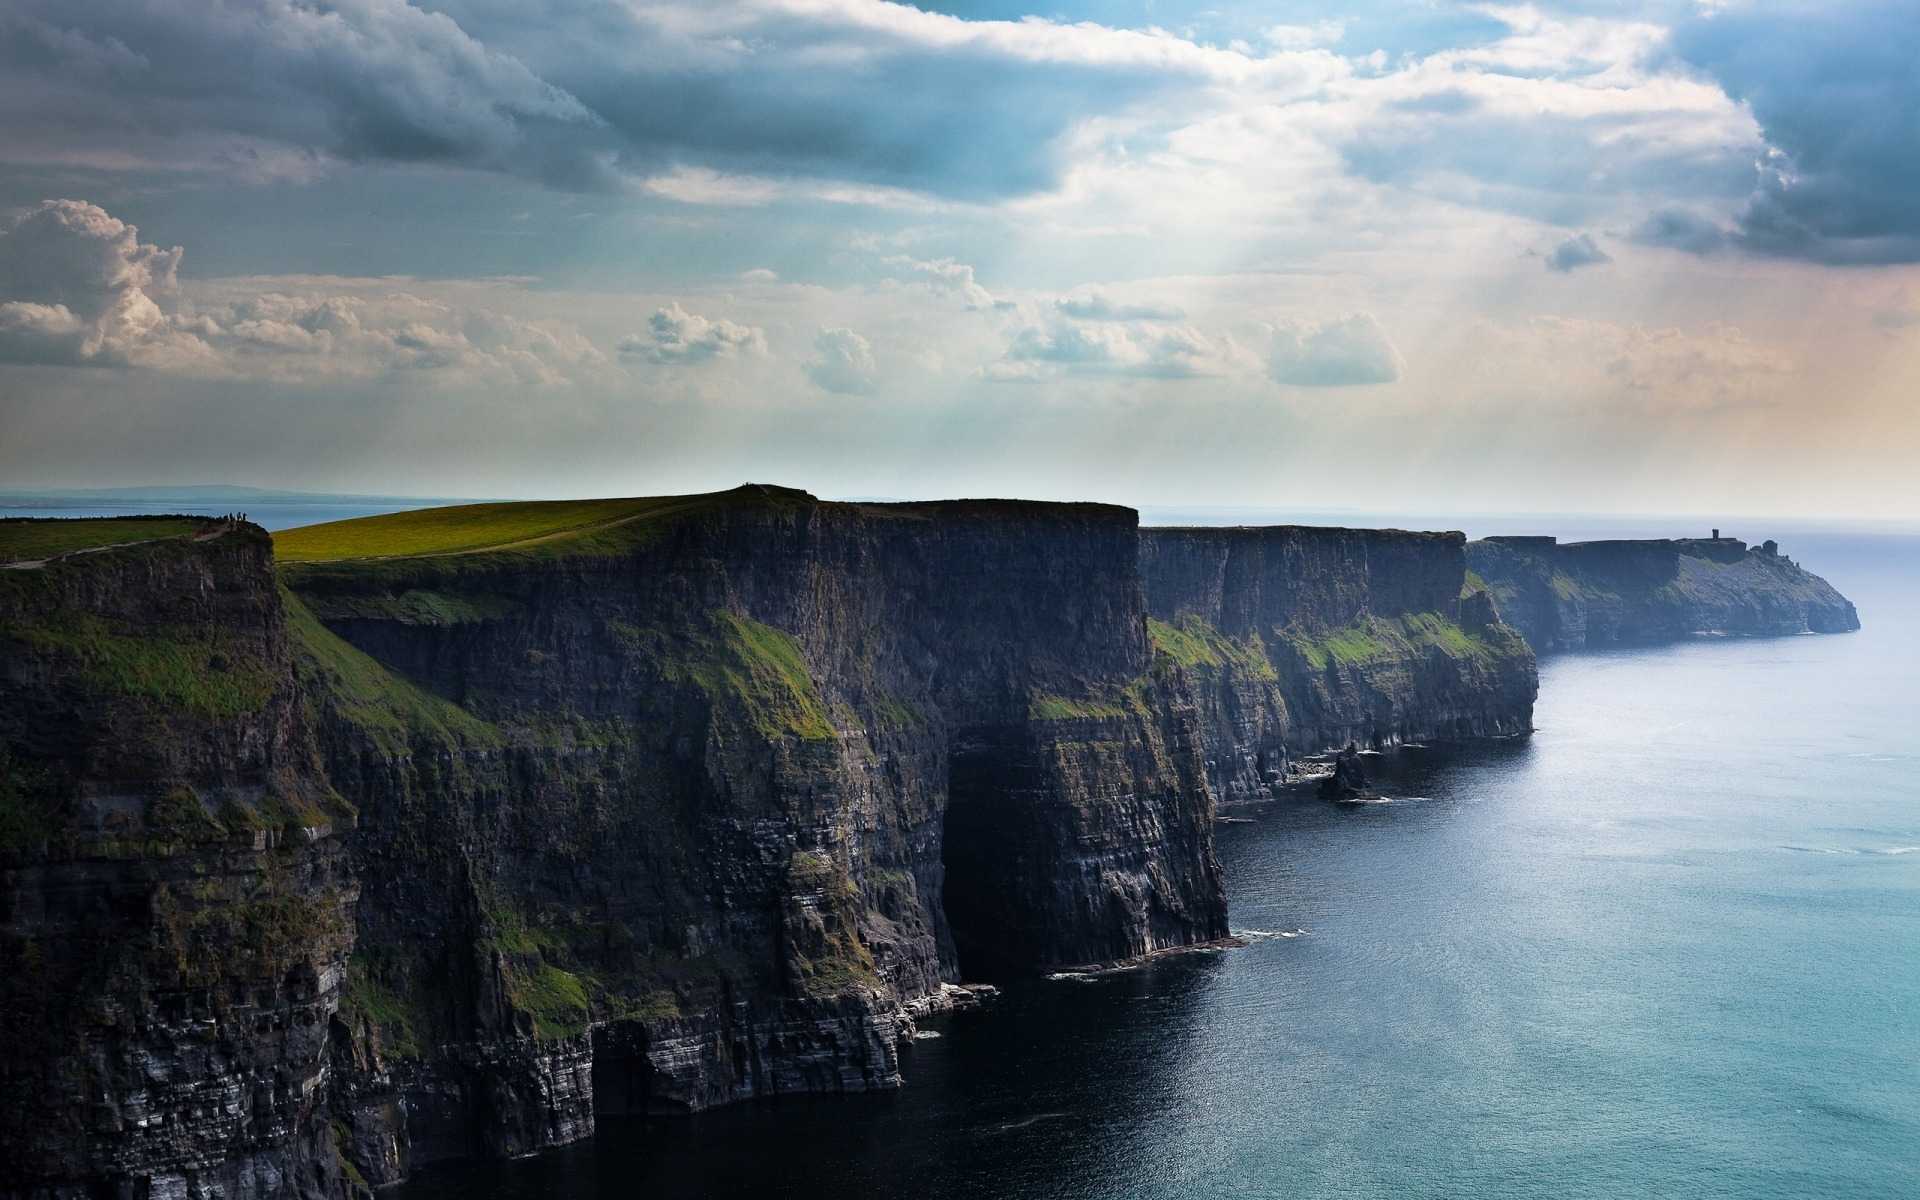 ireland wallpaper 21913 1920x1200 px ~ hdwallsource